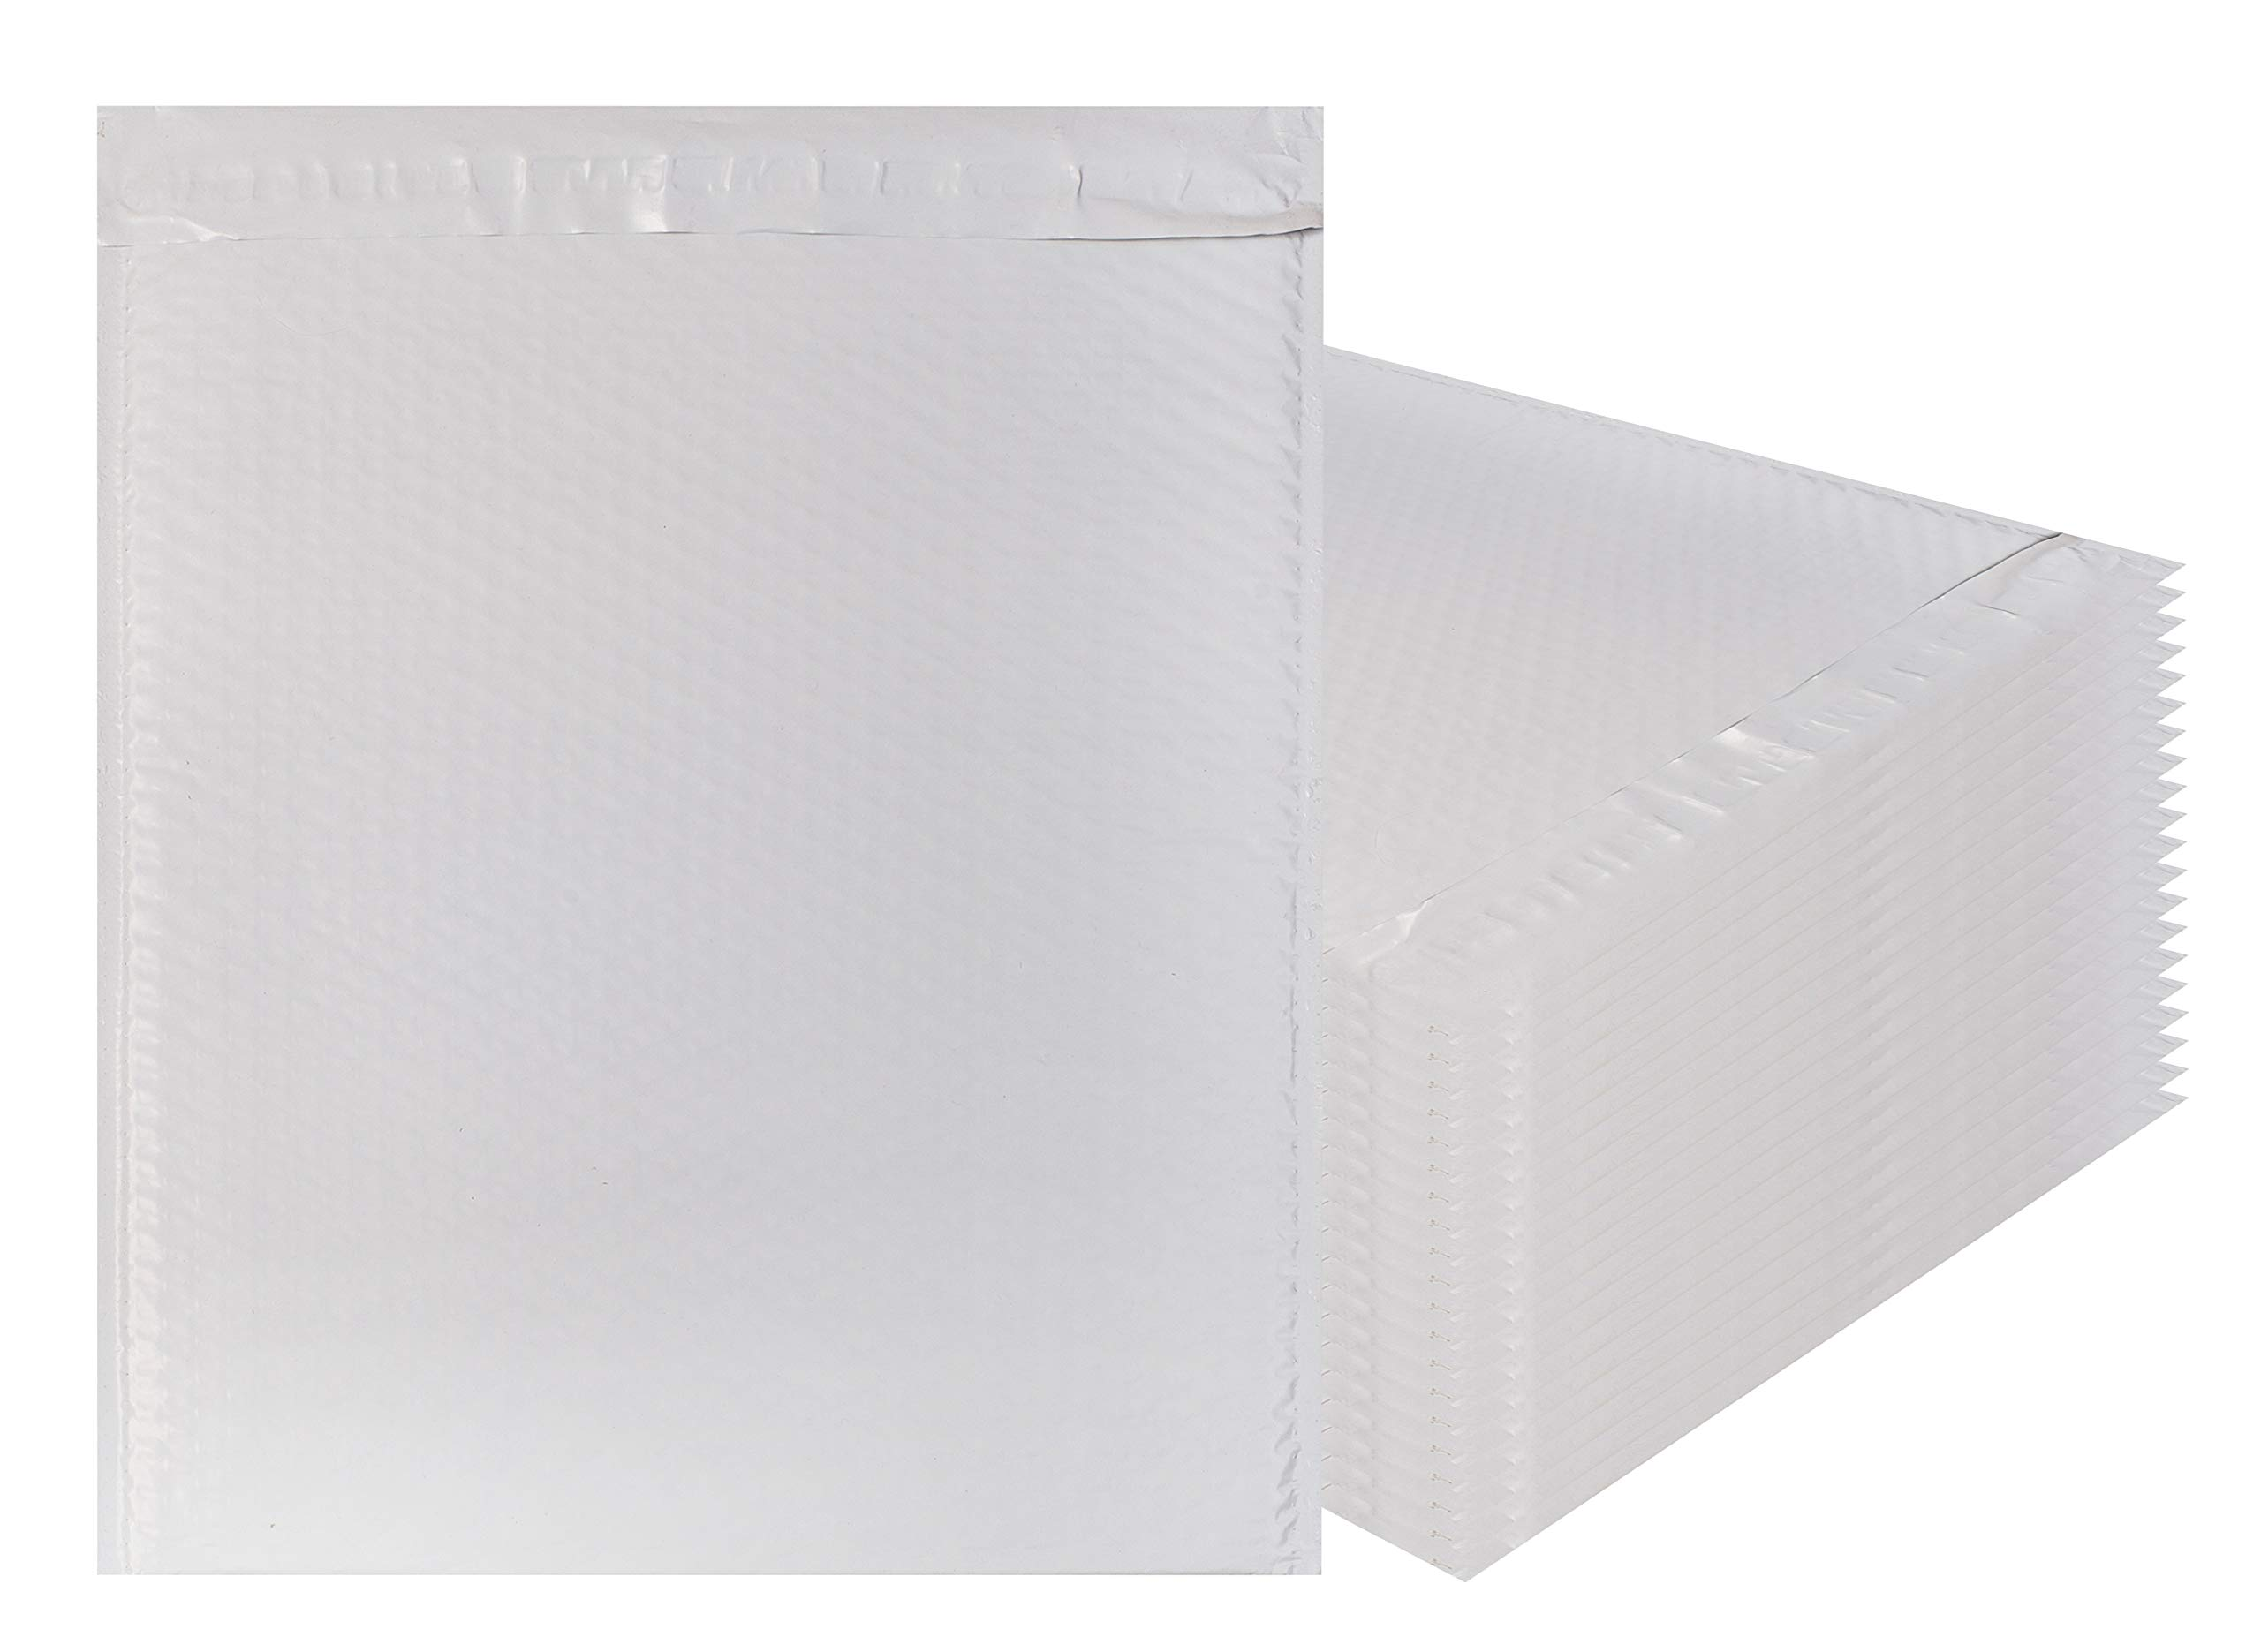 Amiff White Poly bubble mailers 14.75 x 19 Padded envelopes 14 3/4 x 19. Pack of 10 Large Poly cushion envelopes. Exterior size 15.5 x 19 (15 1/2 x 19). Peel and Seal. Mailing, shipping, packaging.